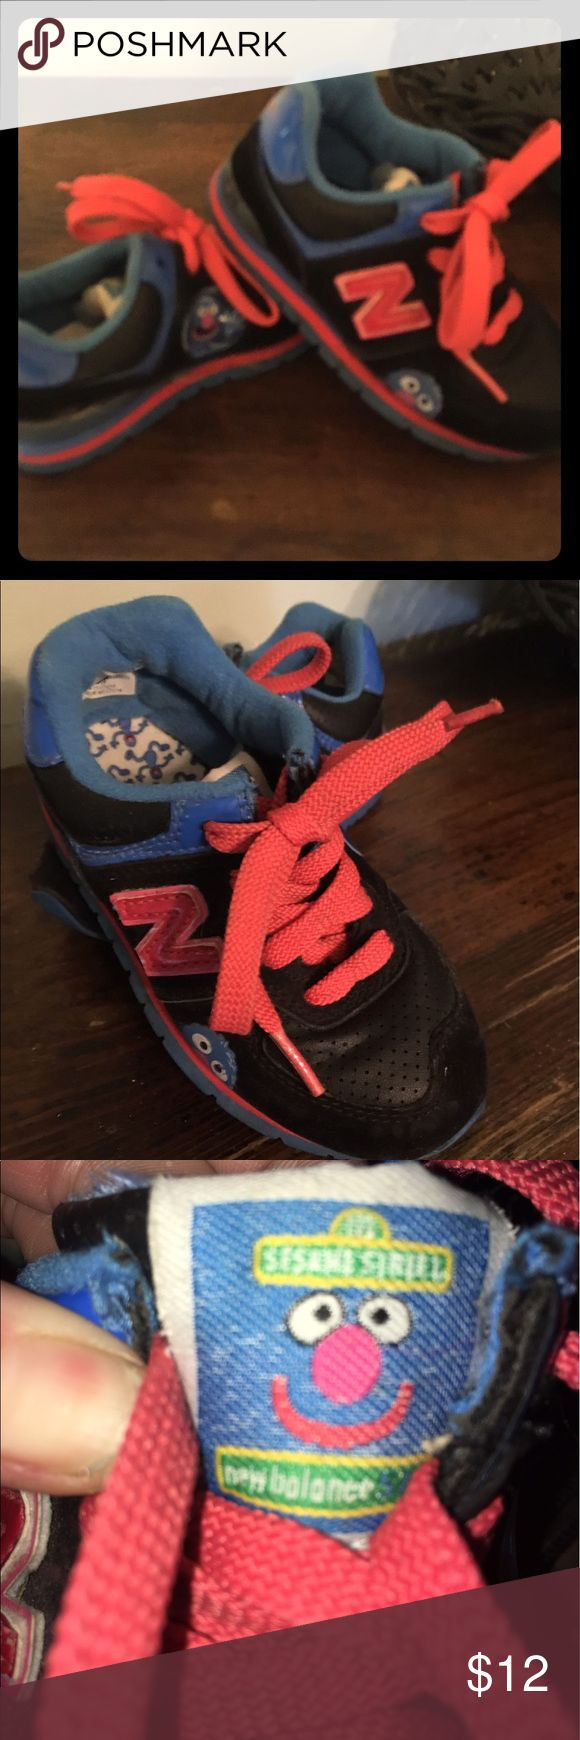 New Balance - Sesame athletic shoes Gently Used - New Balance, Sesame Street - Red & Black New Balance Shoes Sneakers